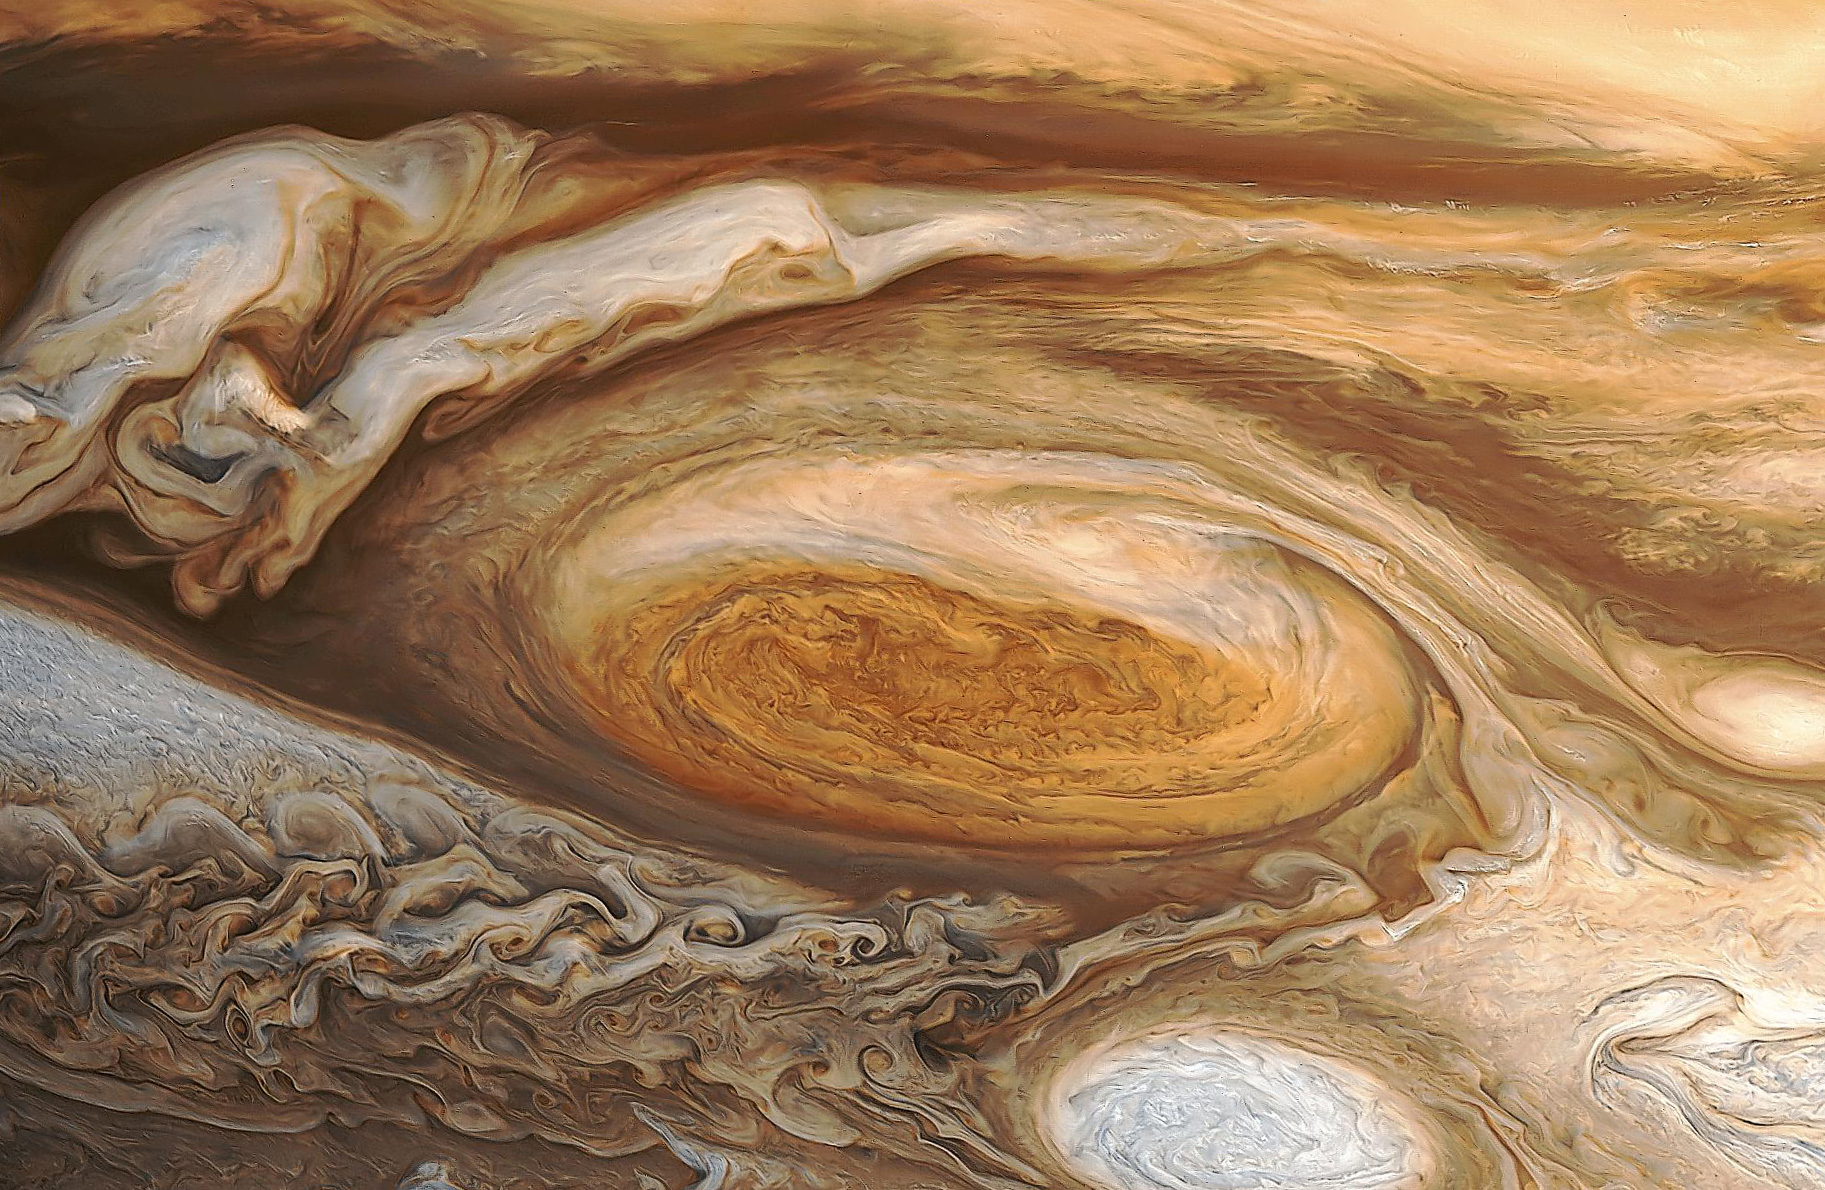 planet jupiter great red spot - photo #4